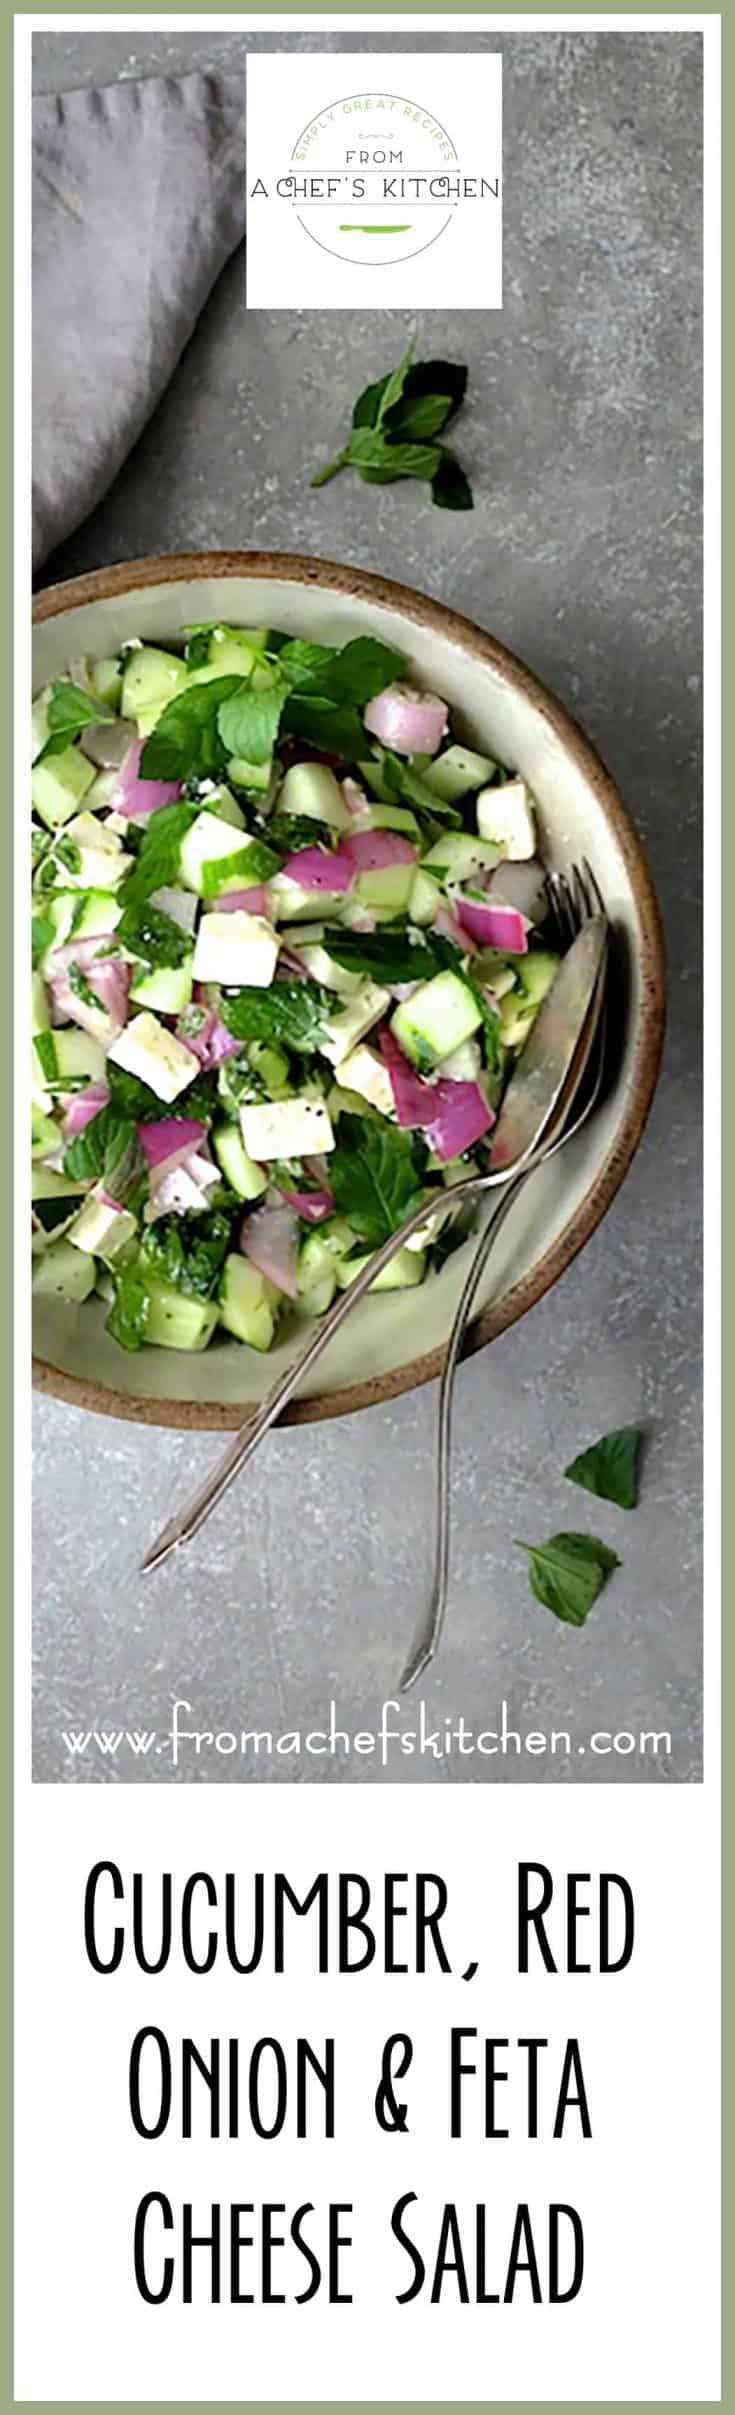 Cucumber Red Onion Feta Cheese Salad is crunchy, easy, delicious and comes together quickly!  Perfect with anything you're serving this summer!  #cucumber #redonion #fetacheese #salad #vegetable